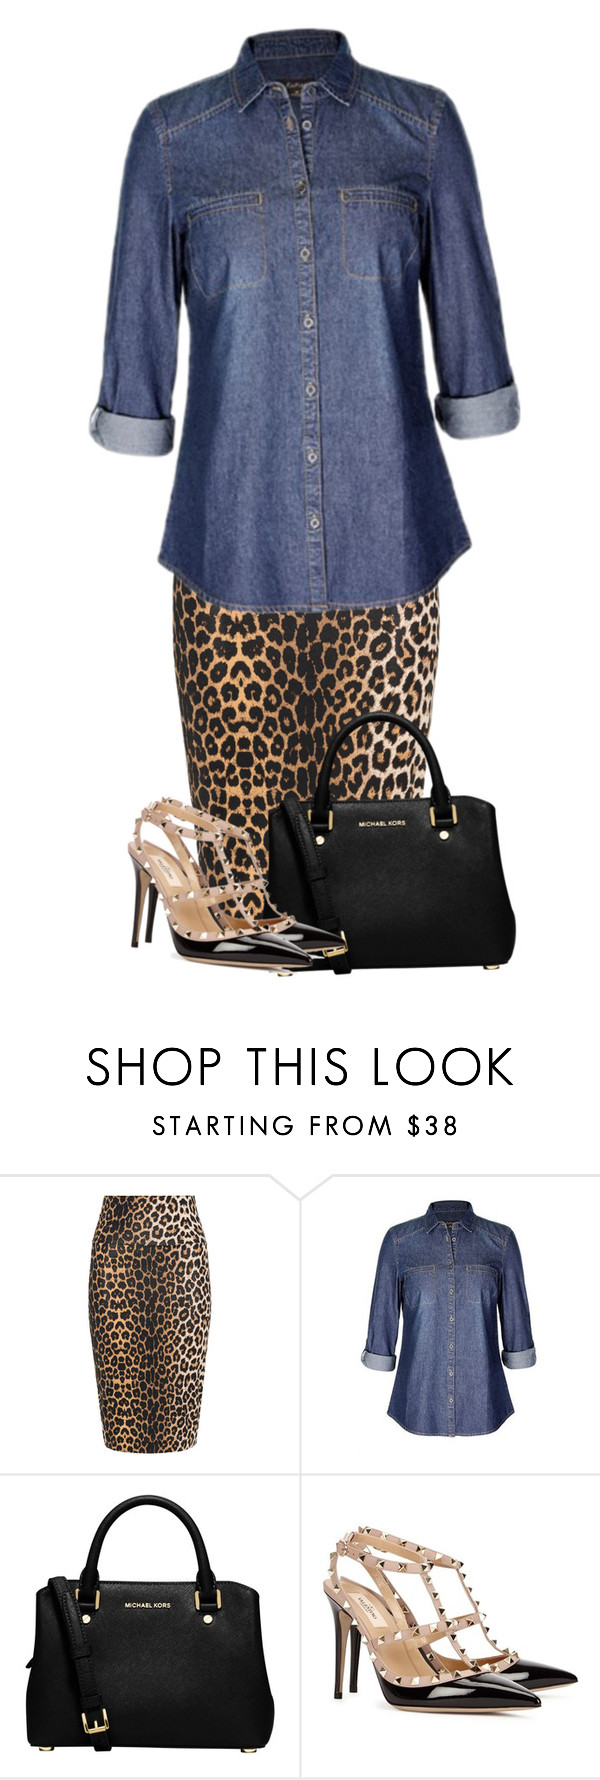 """""""🙃will be posting lots today🙃"""" by miagracerobinson ❤ liked on Polyvore featuring Yoek, MICHAEL Michael Kors and Valentino"""